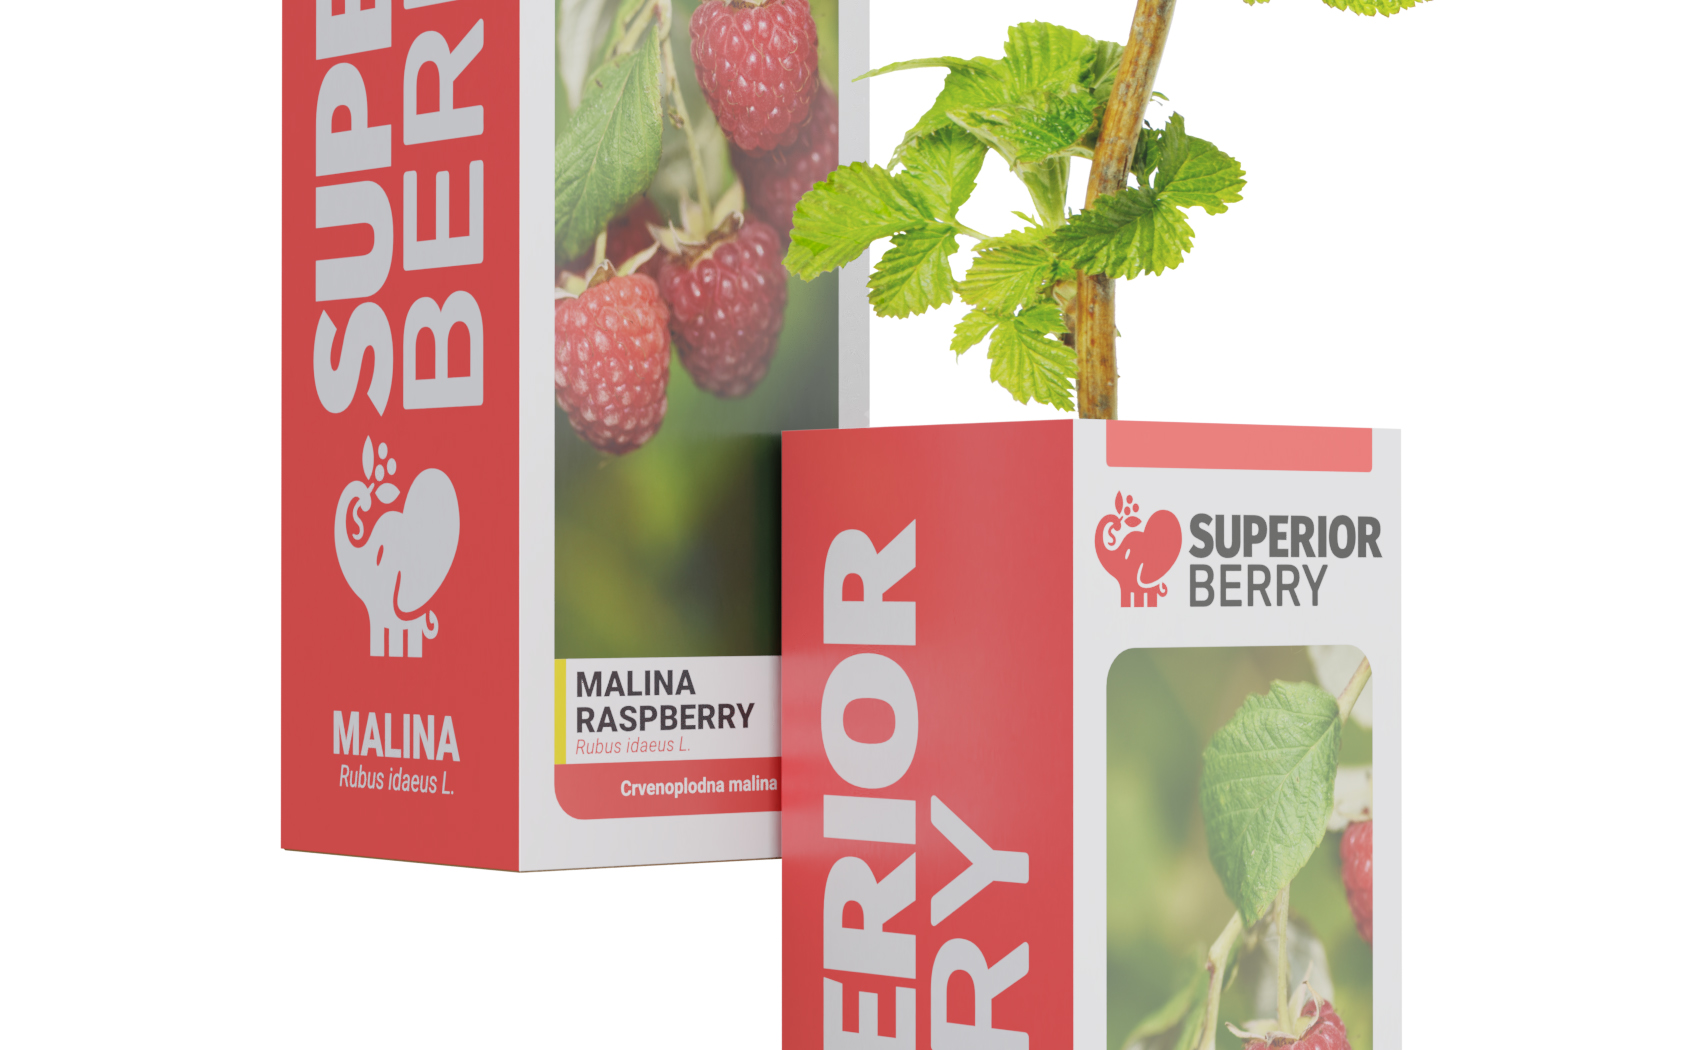 superior berry raspberry seedling in the box